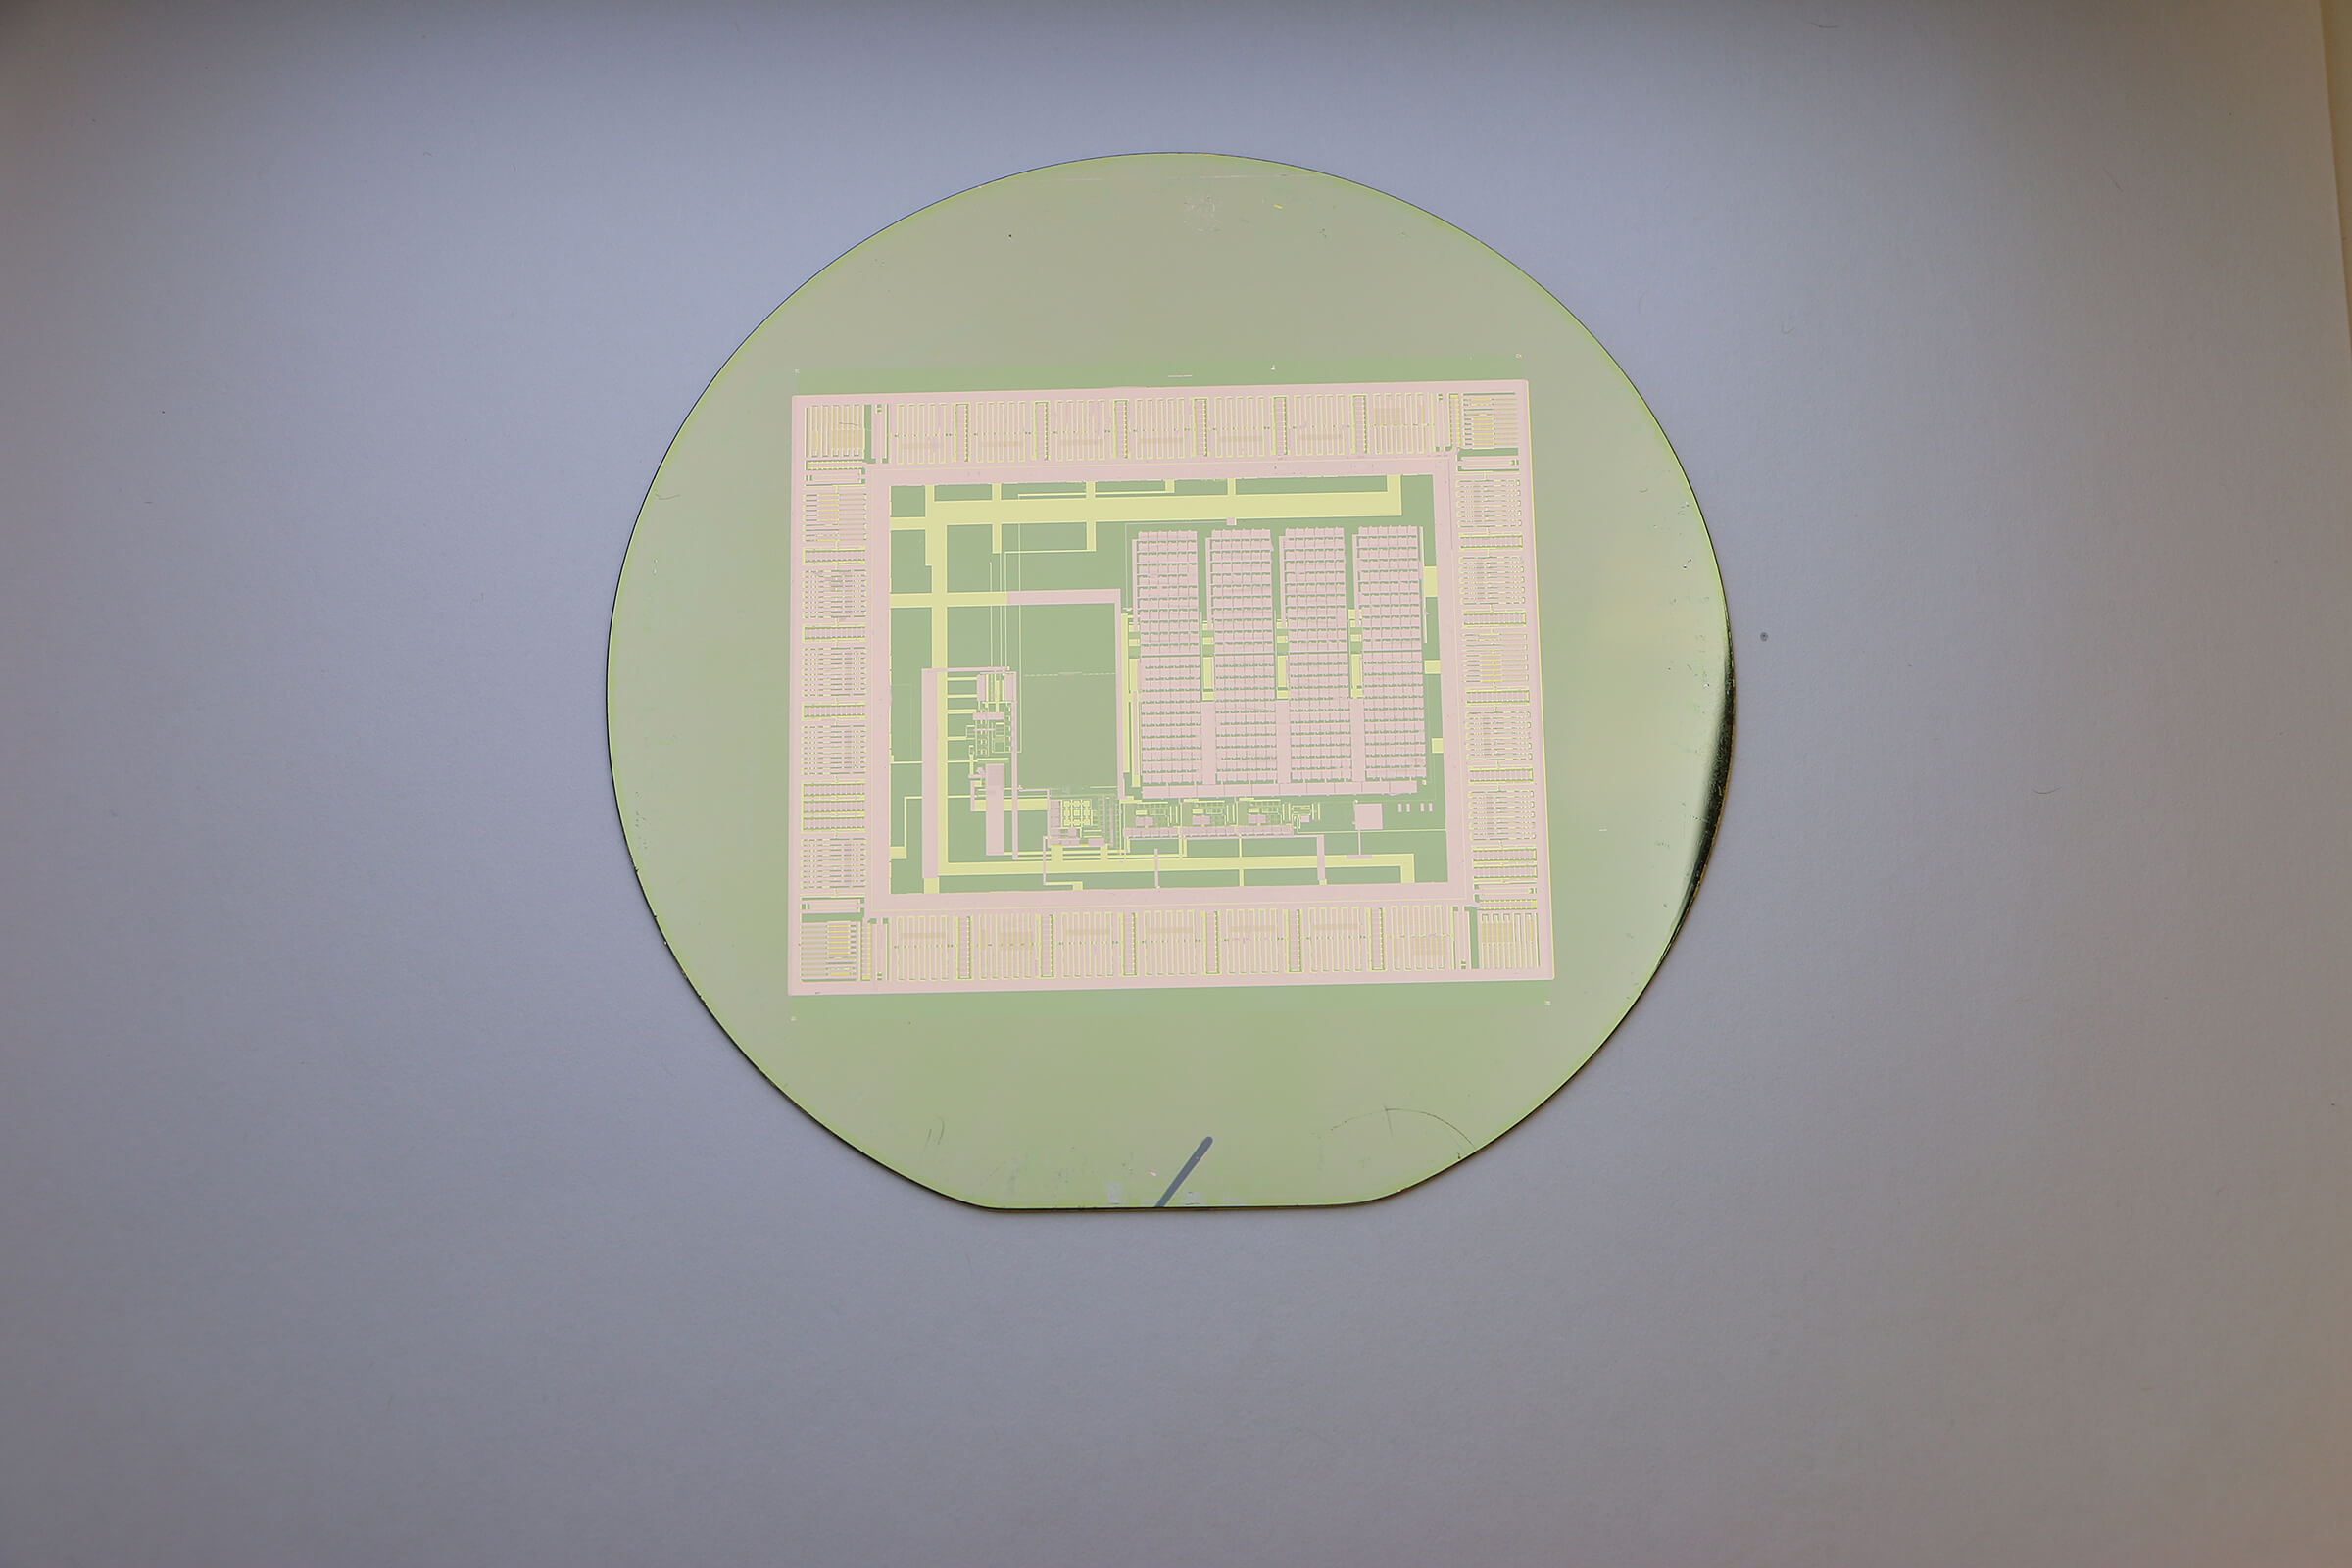 Electronic Stickers To Streamline Large Scale Internet Of Things Most Popular Circuits A Thin Film Circuit Can Peel Easily From Its Silicon Wafer With Water Making The Reusable For Building Nearly Infinite Number